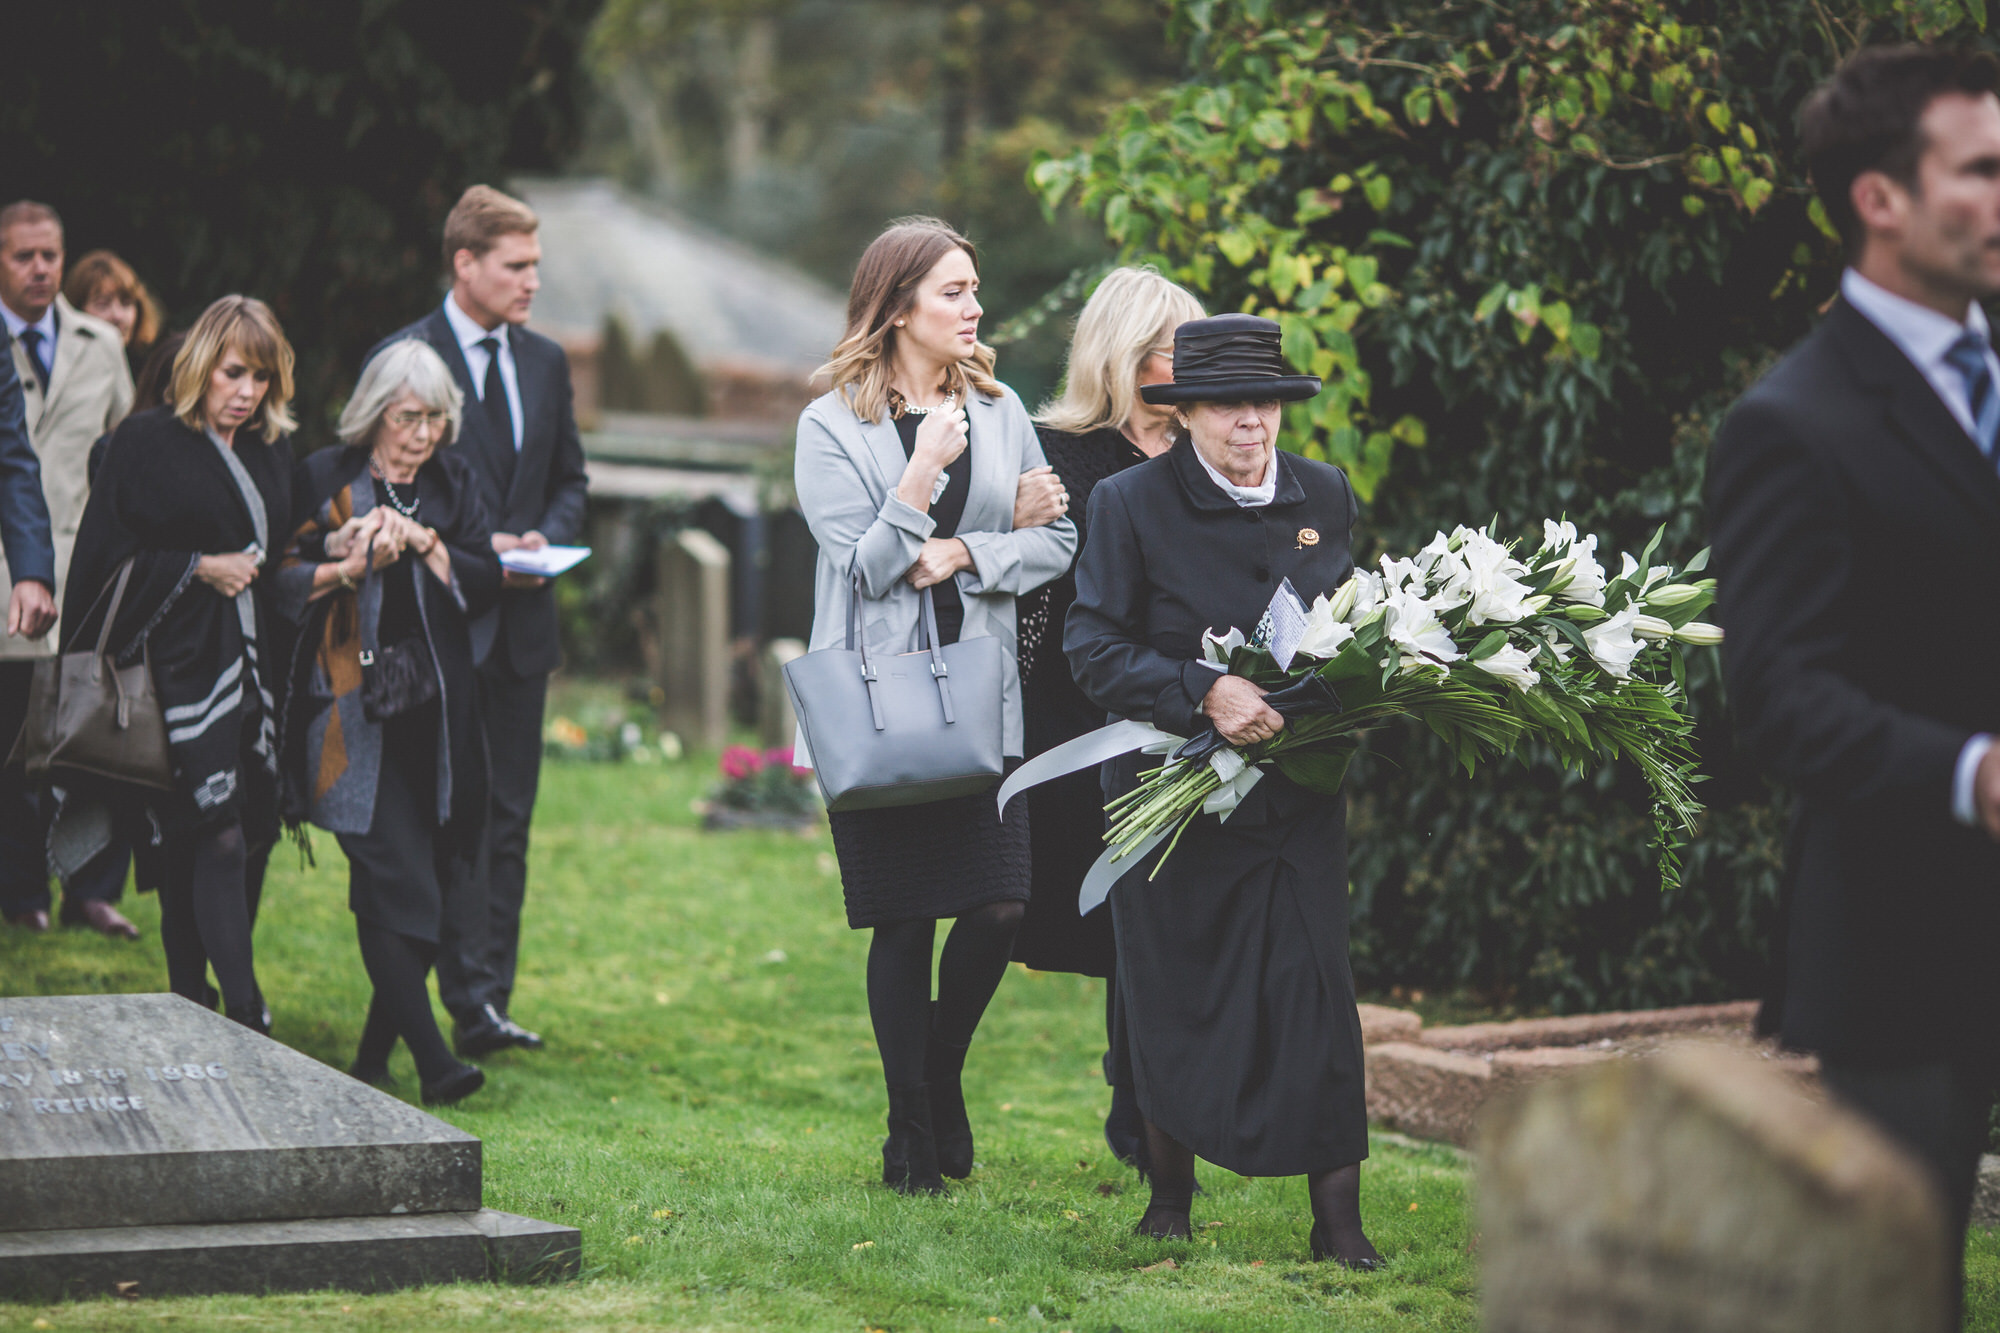 Funeral Photographers